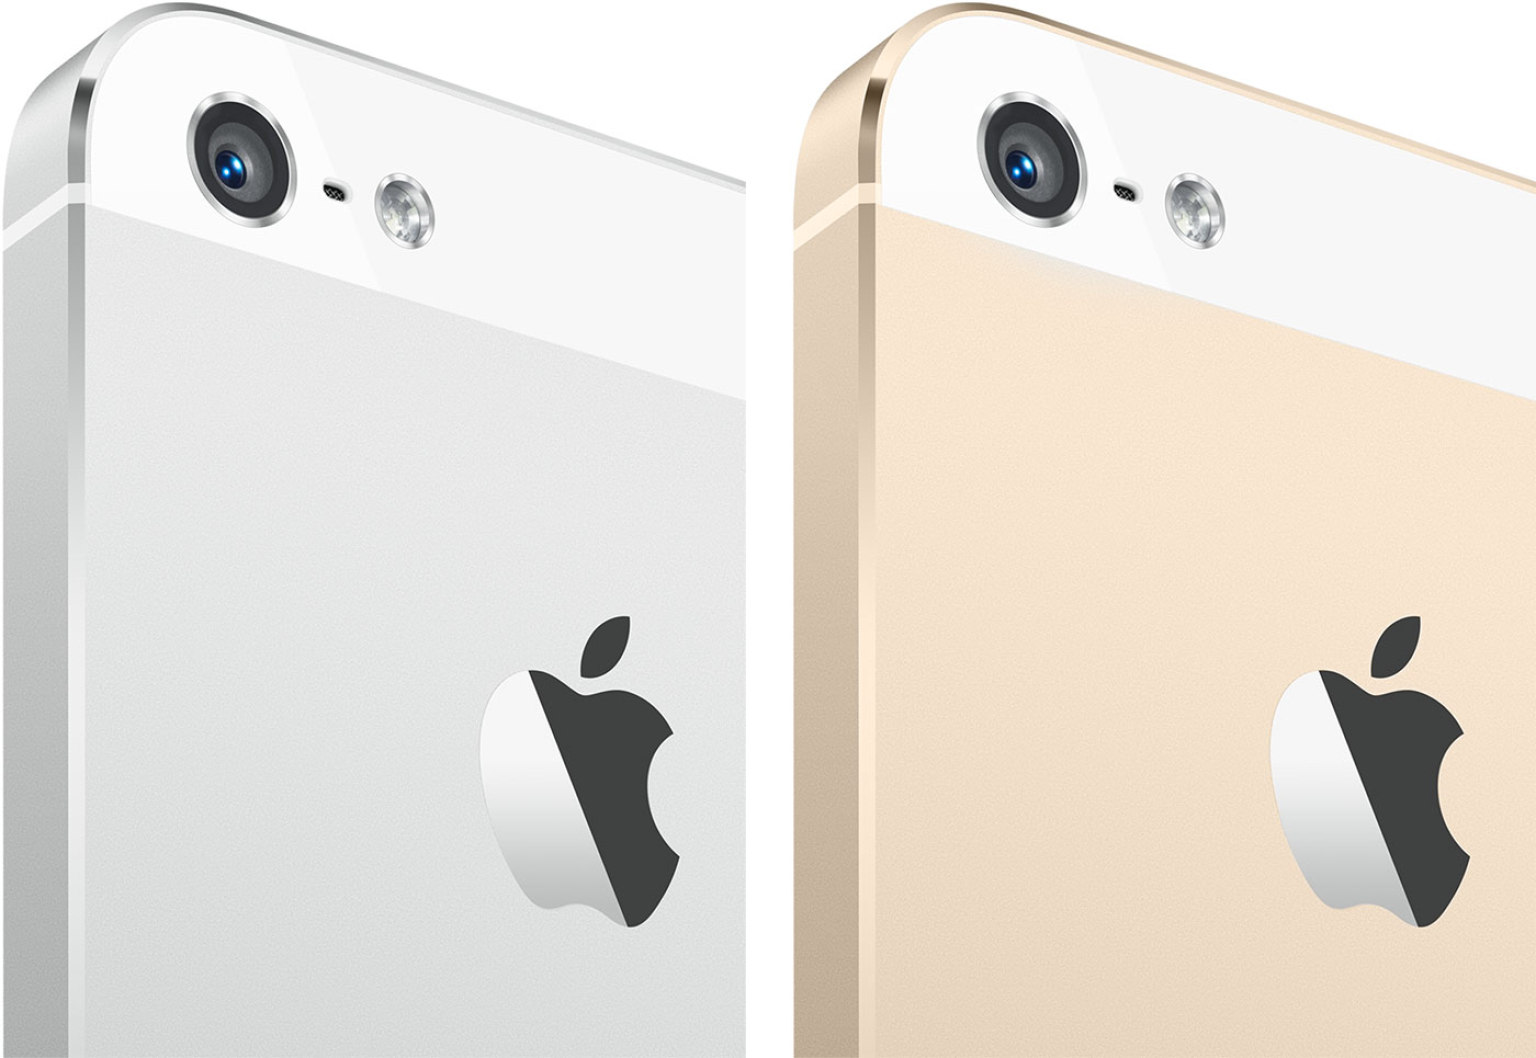 Champagne Gold Iphone 5s Front Jpeg Iphone 5s Champagne